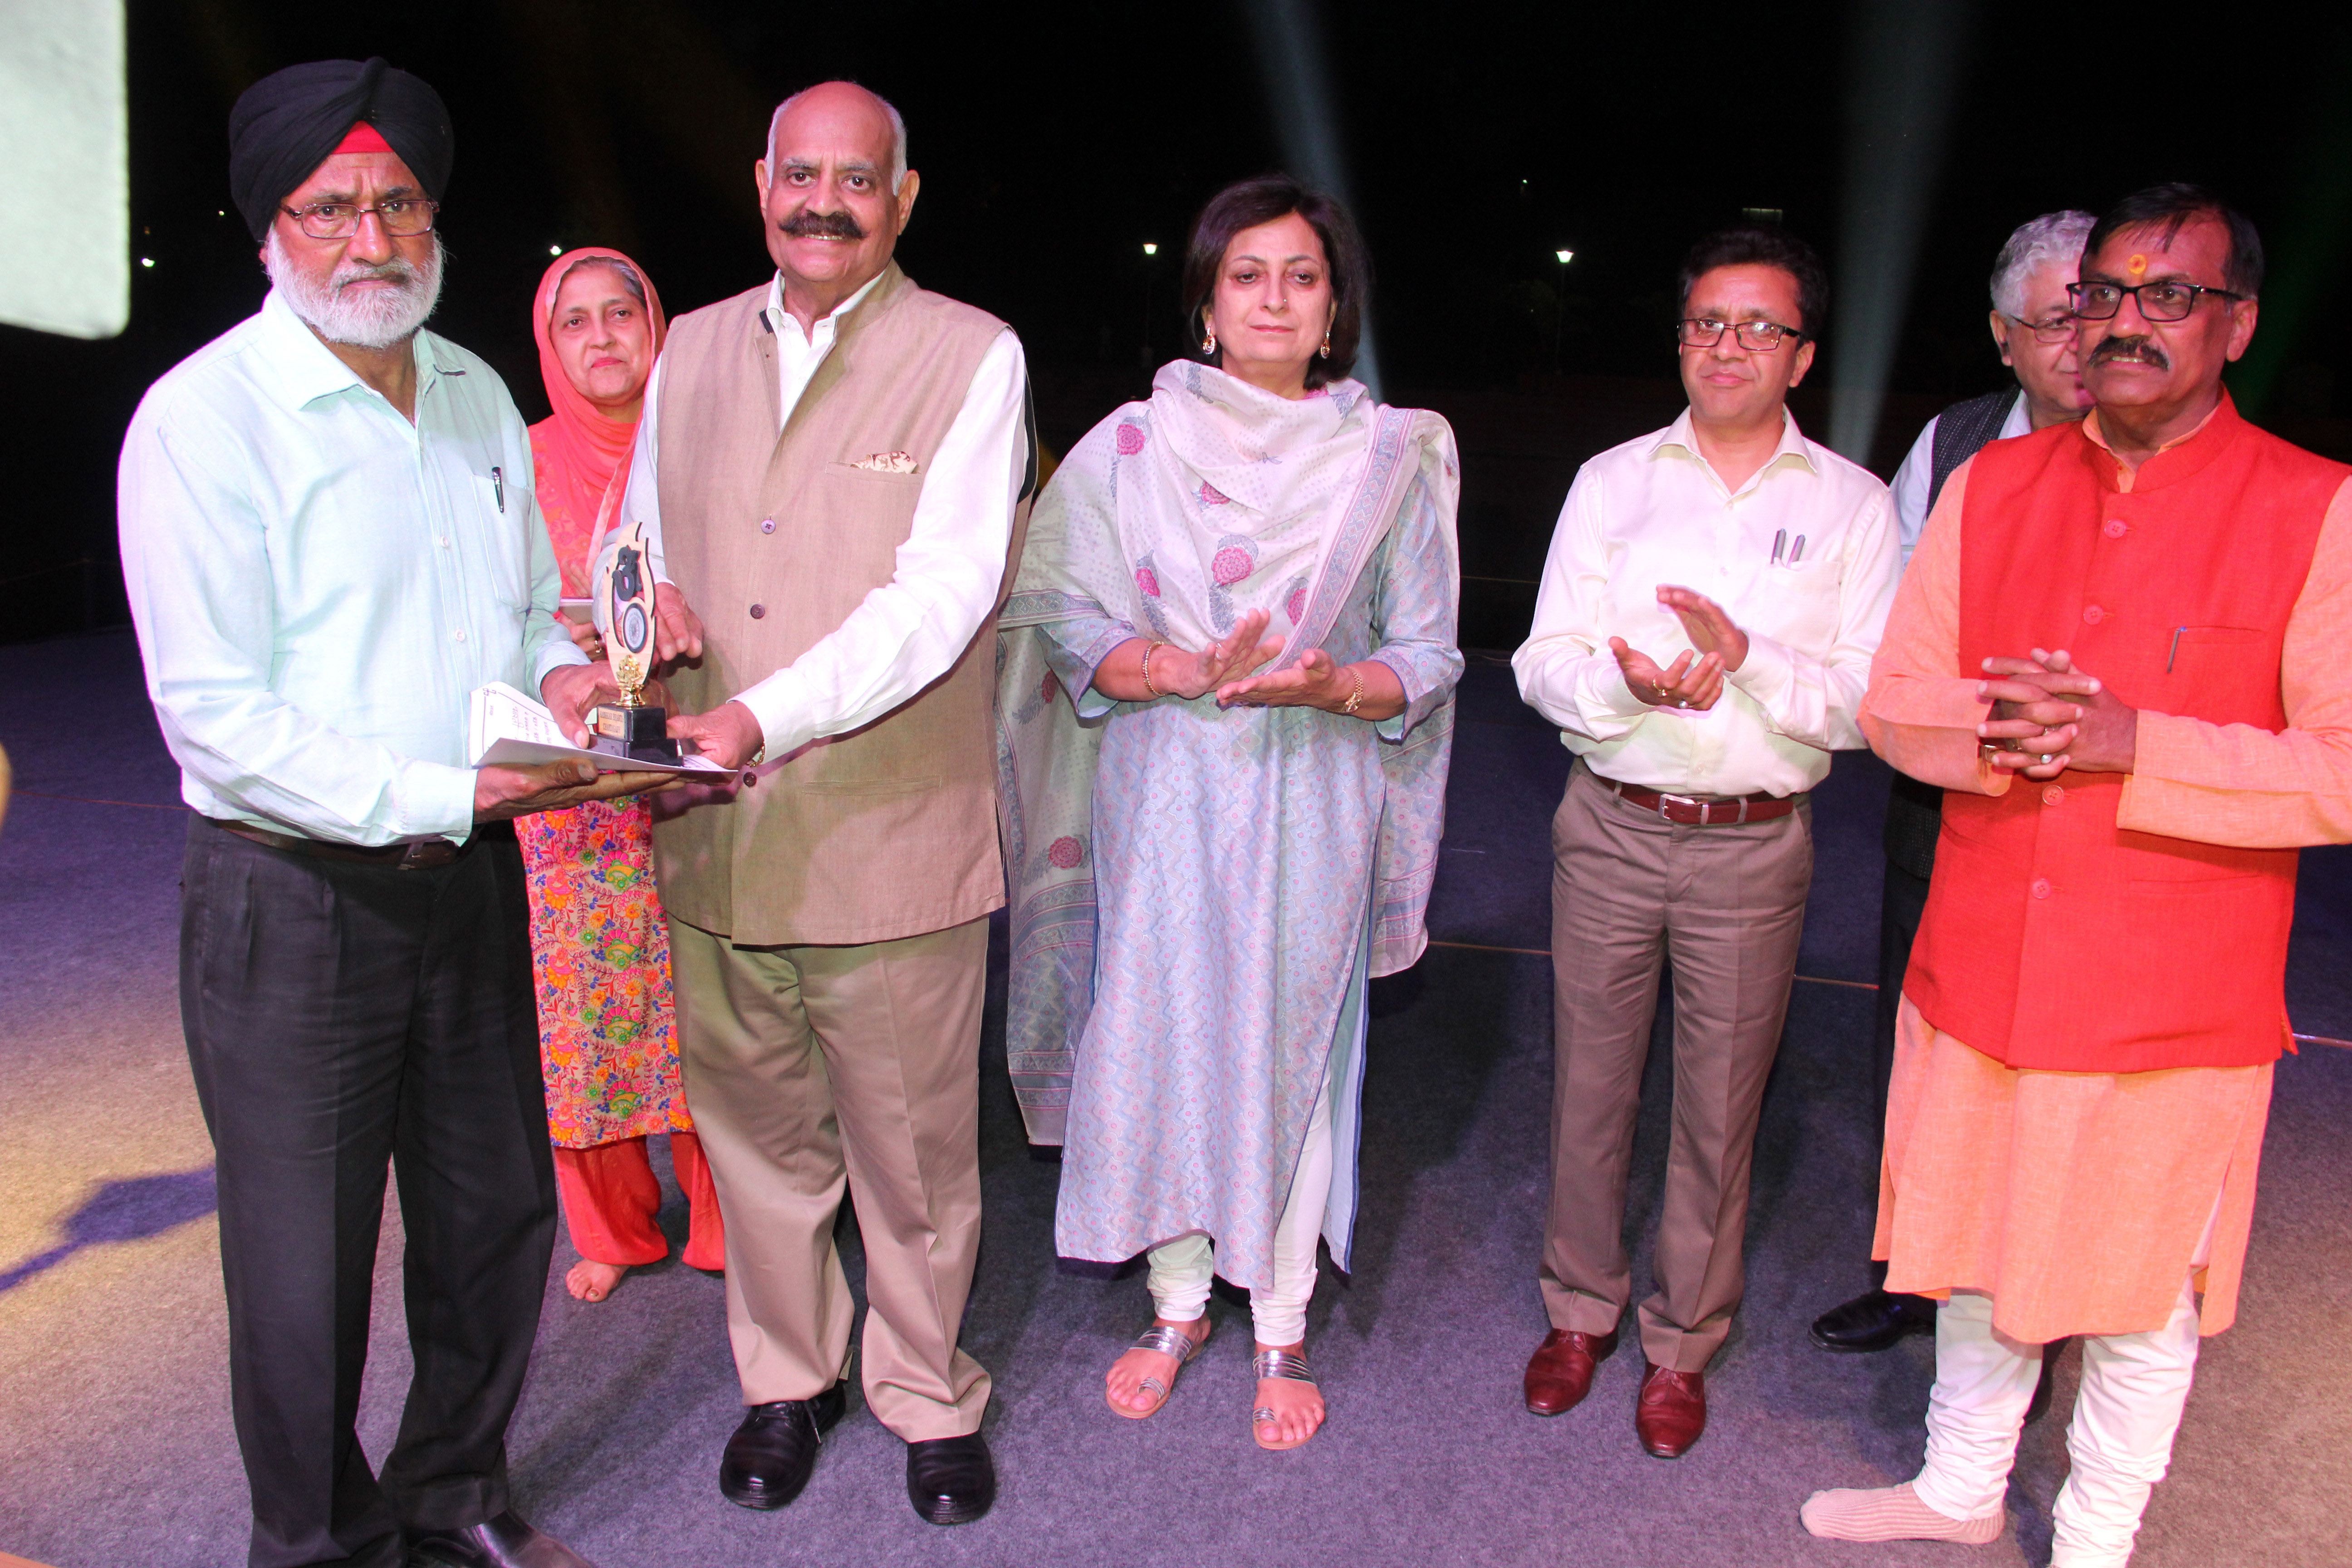 """The Governor of Punjab and Administrator, UT, Chandigarh, Shri V.P. Singh Badnore honouring to the Painting WorkShop  artists at the  """"OCTAVE-2018"""" Festival of the North East States at New Lake, Sector-42, Chandigarh on Tuesday, March 20, 2018."""